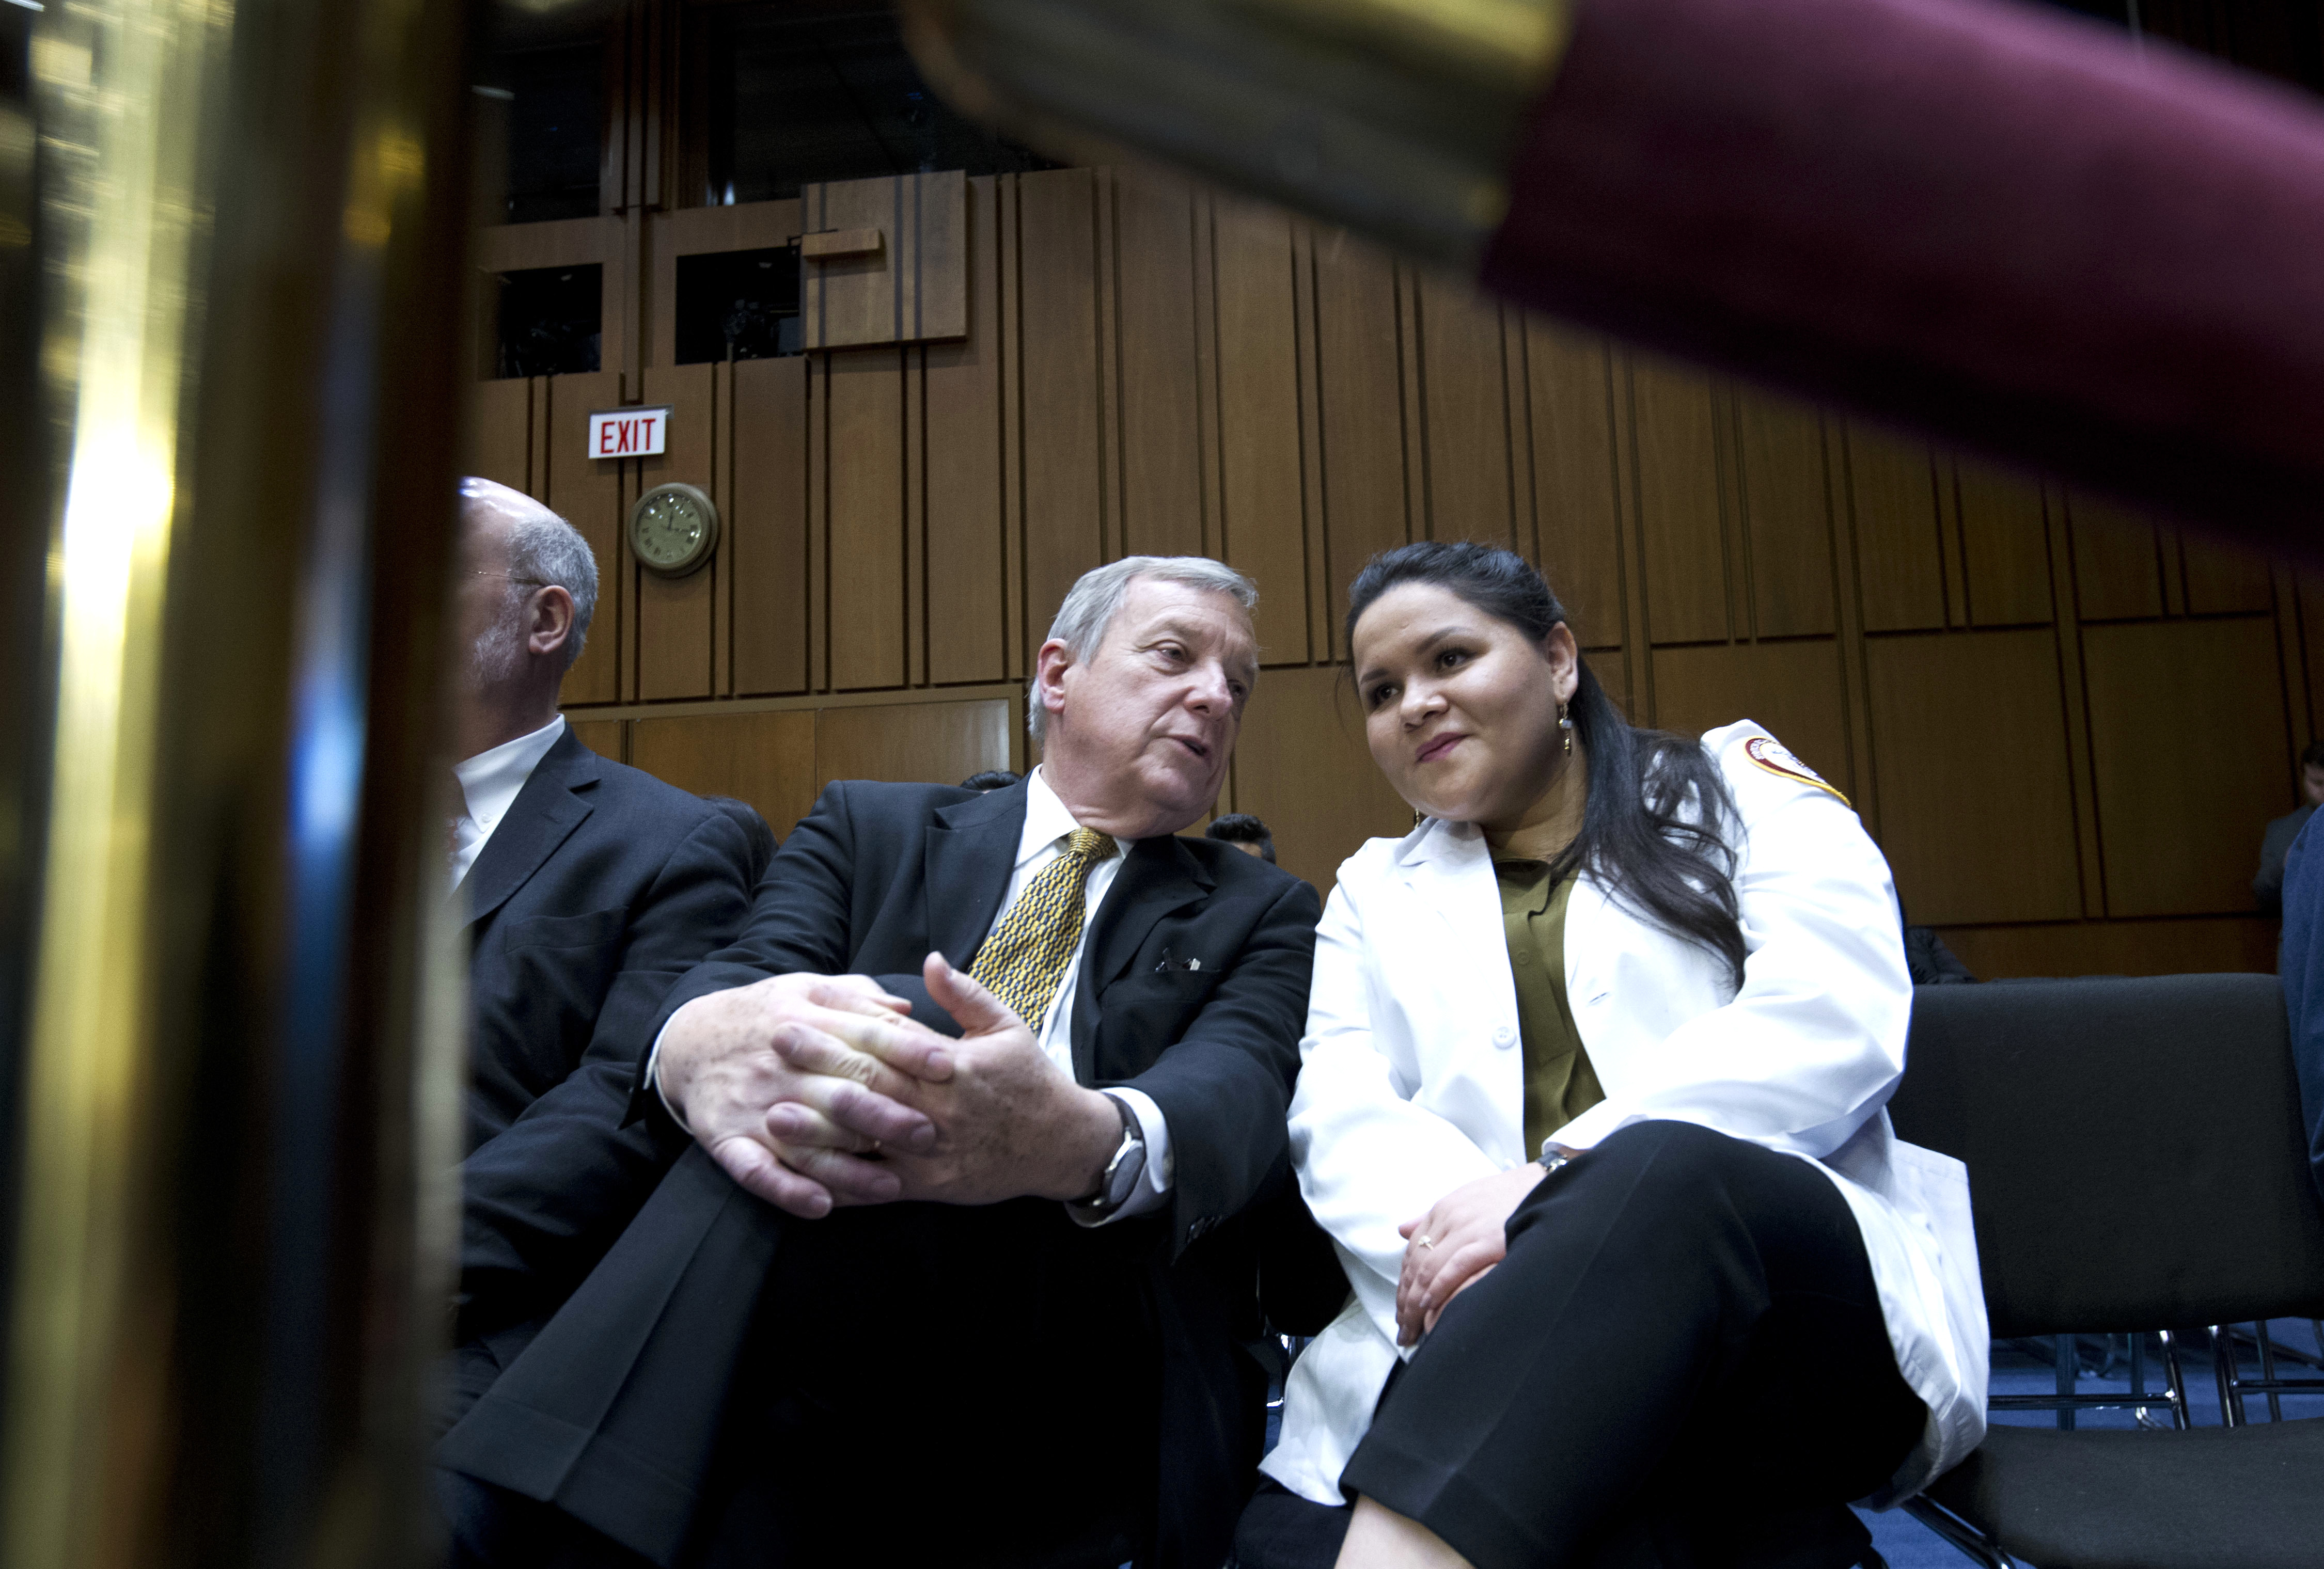 Sen. Dick Durbin D-Ill., speaks with medical student Alejandra Duran from Chicago, during a hearing with Homeland Security Secretary Kirstjen Nielsen on Capitol Hill, Jan. 16, 2018, in Washington.